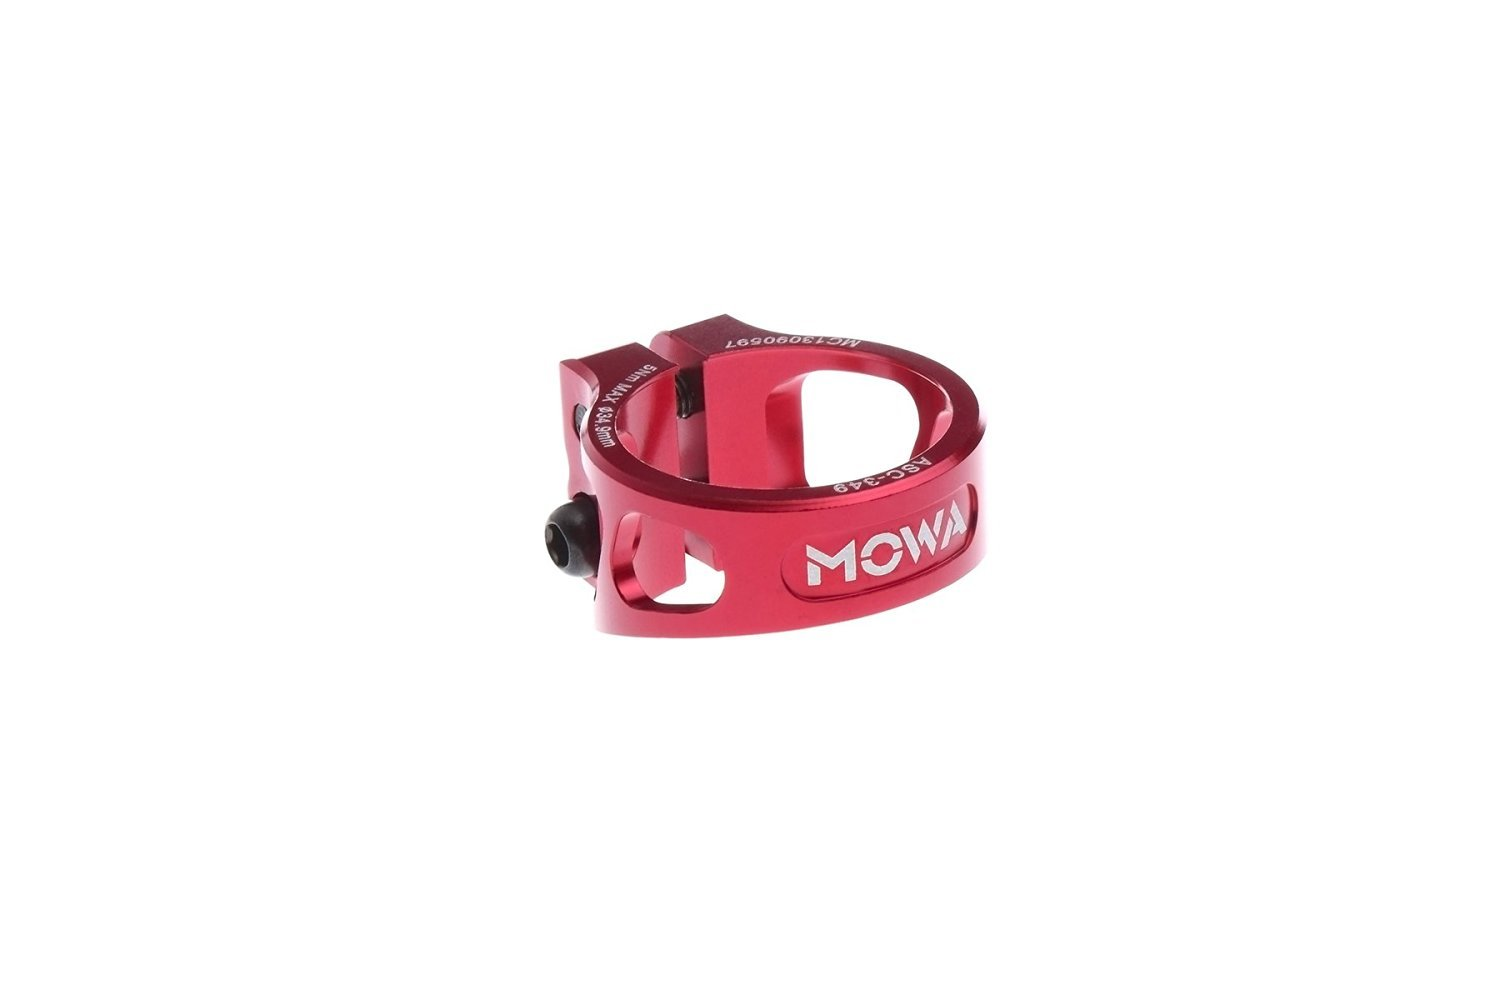 MOWA ASC Road Cyclocross CX Mountain Bicycle MTB Bike Cycling Alloy Seatpost Clamp 31.8 and 34.9 (Red, 34.9mm) by MOWA